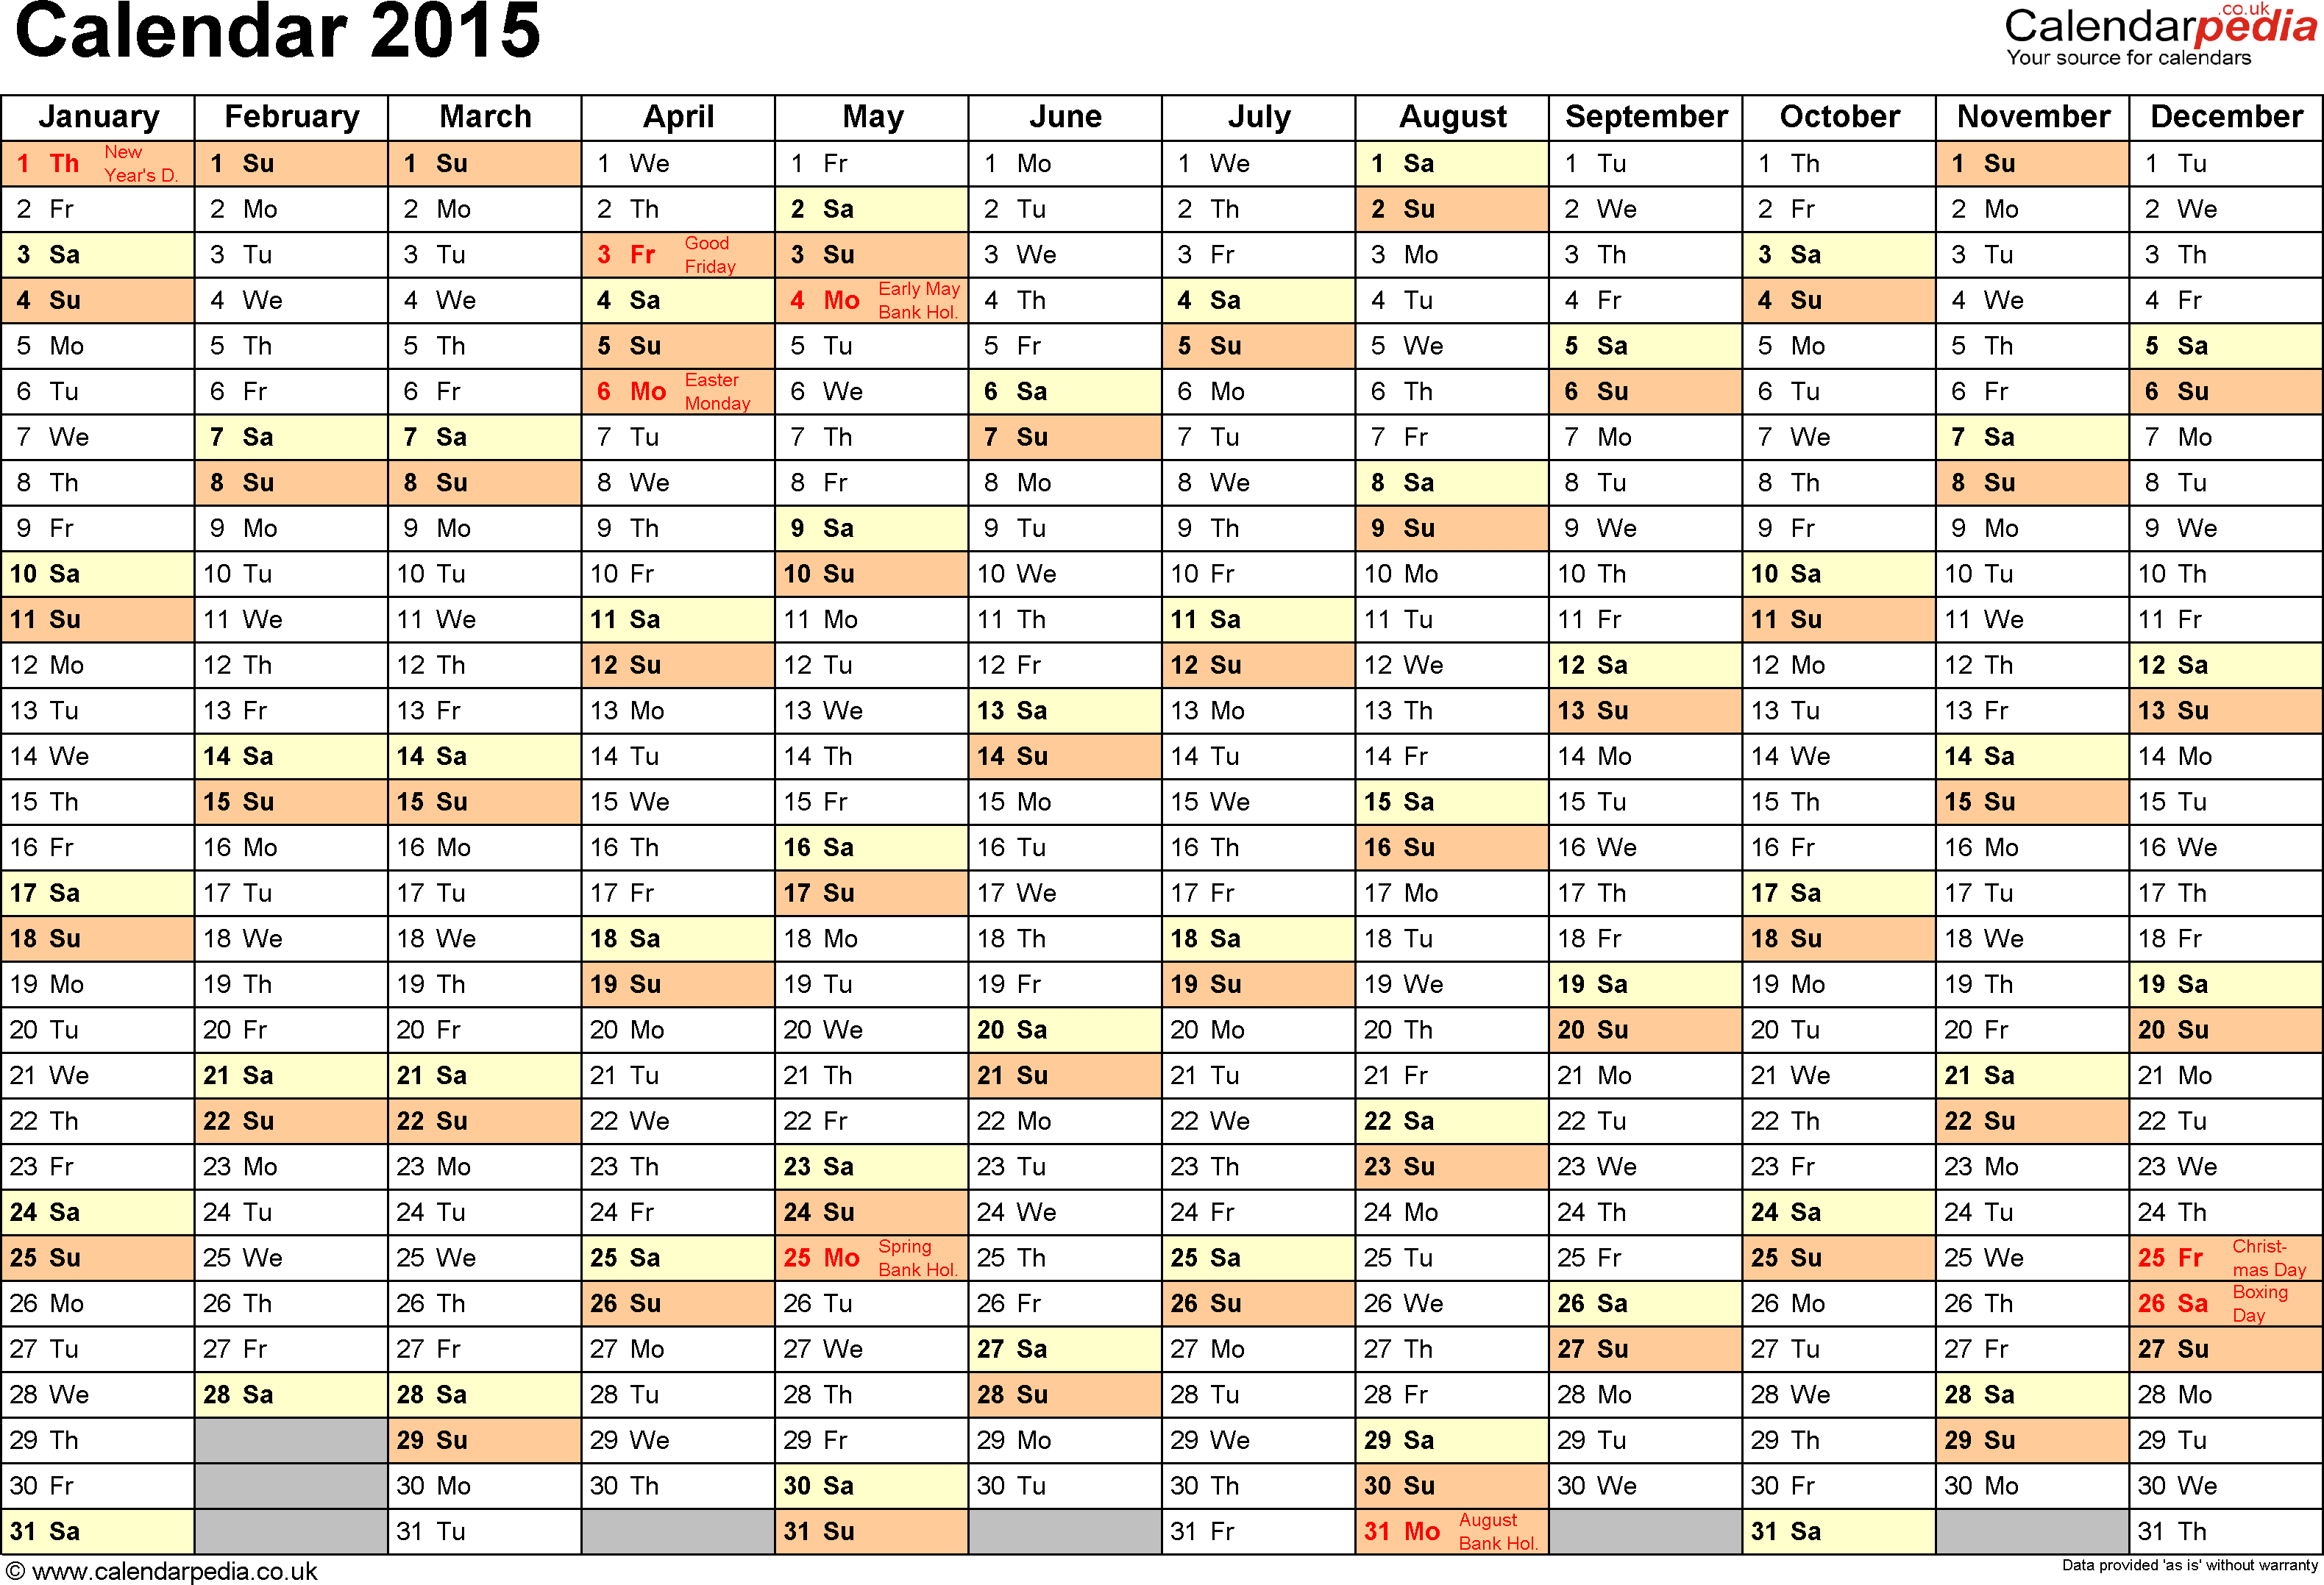 Calendar 2015 UK with bank holidays & Excel/PDF/Word templates